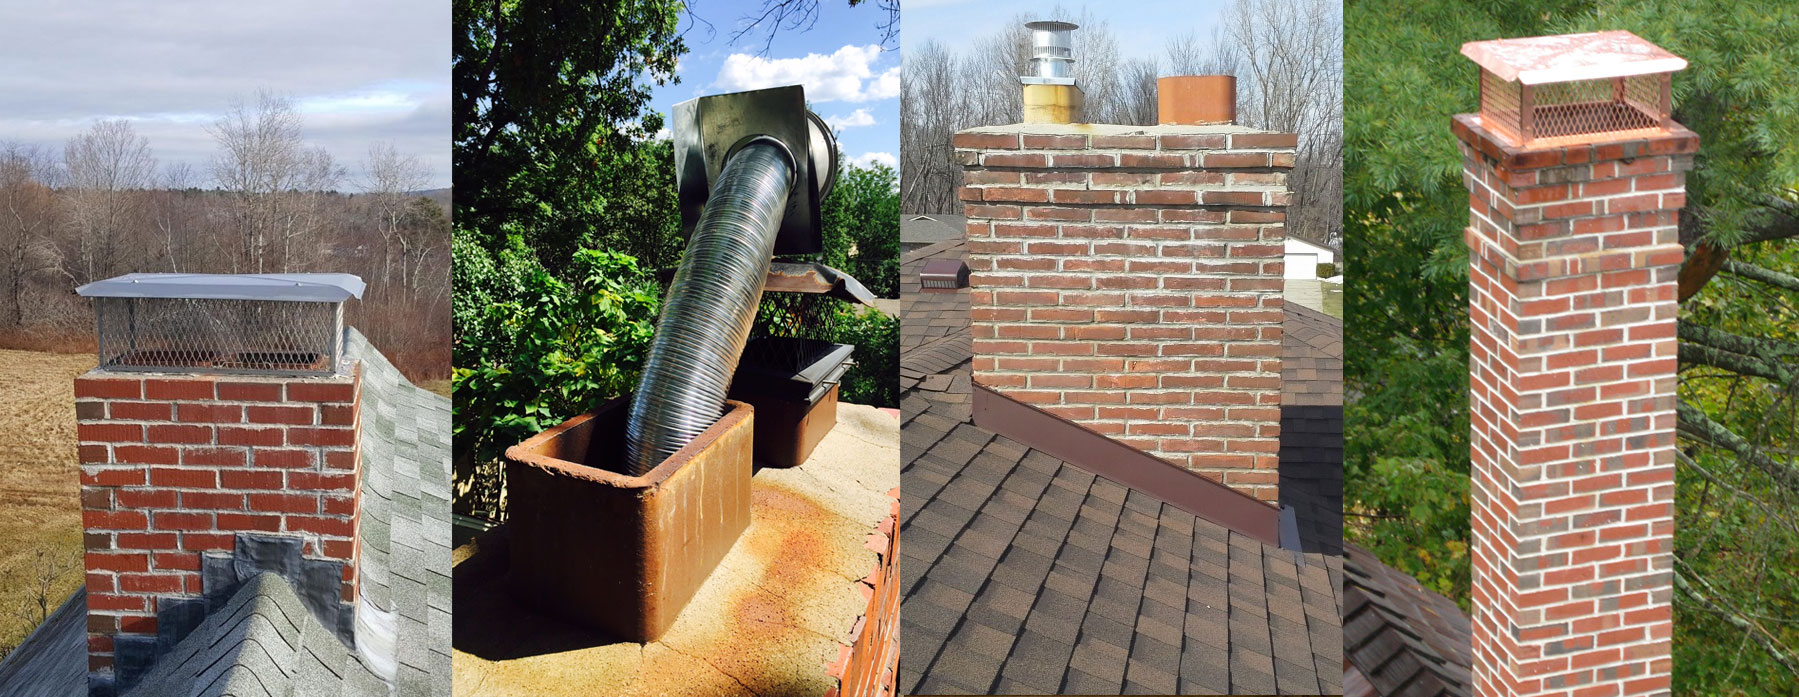 Chimney Repair Riverhead Ny Chimney Leak Repair